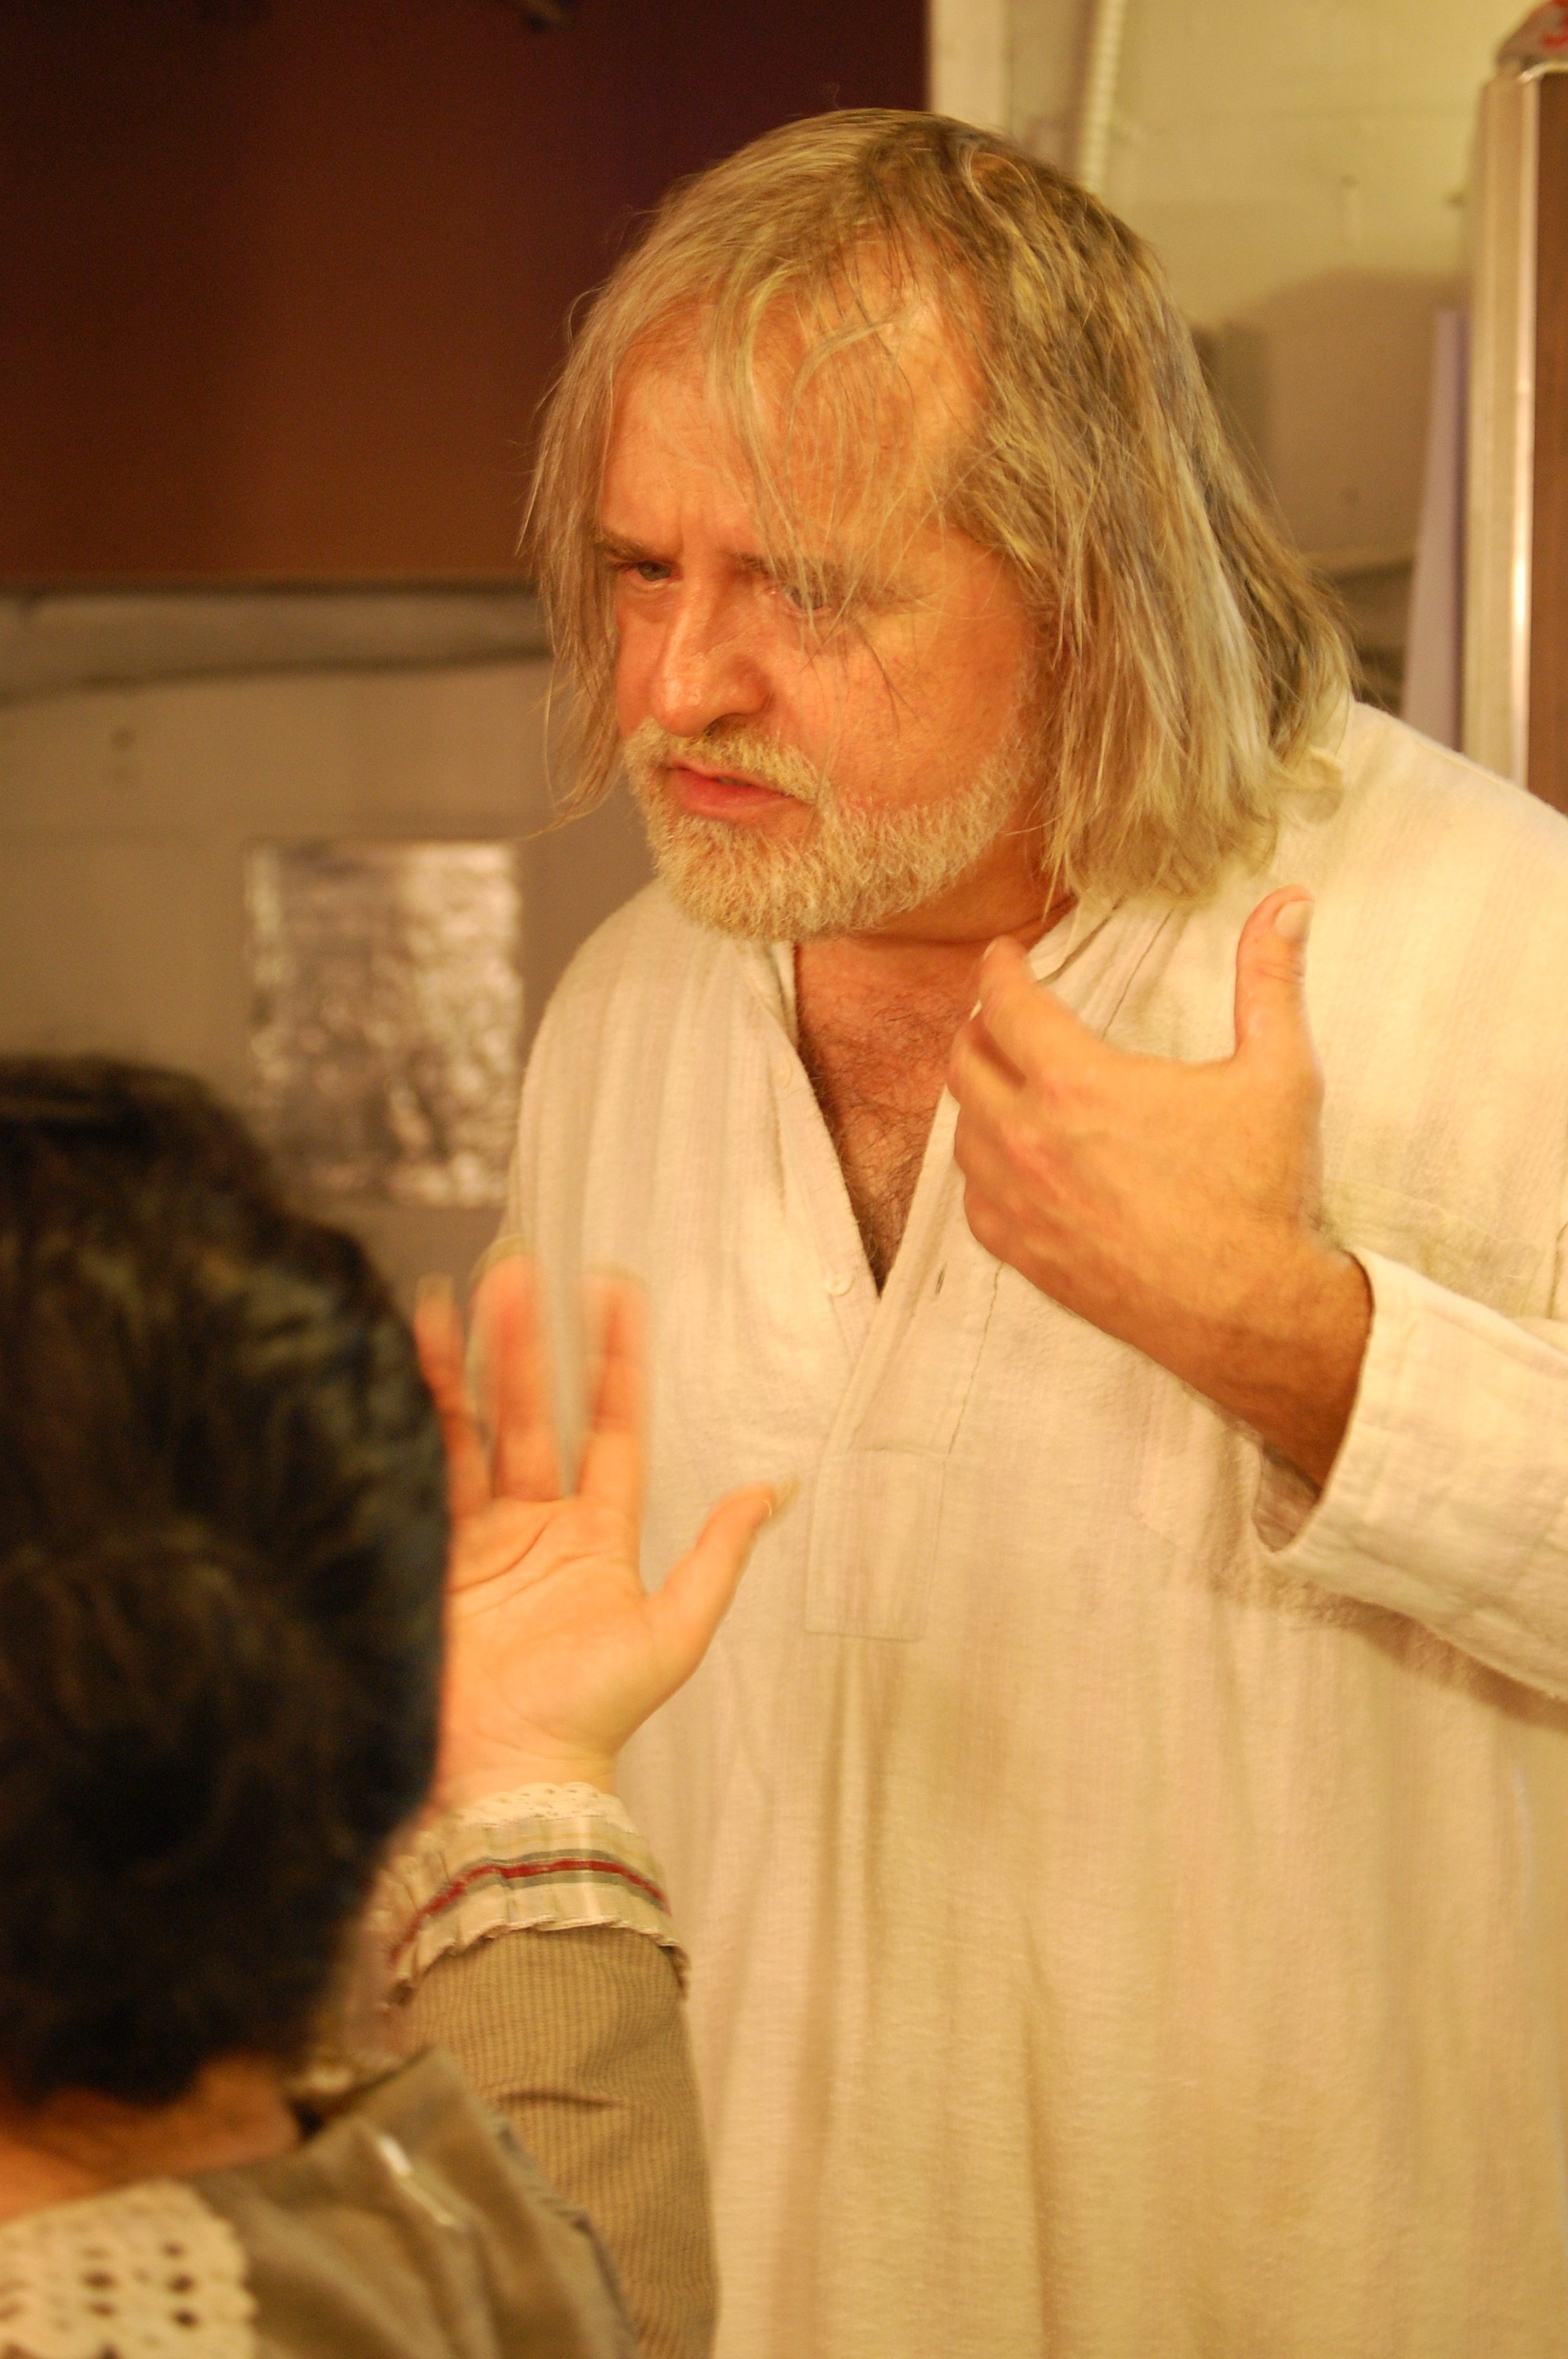 Actor Trent Hopkins backstage during Lascaux Entertainment's 2011 production of  The Elephant Man , directed by John Drouillard.  Photo by Nirvana Kowlessar.